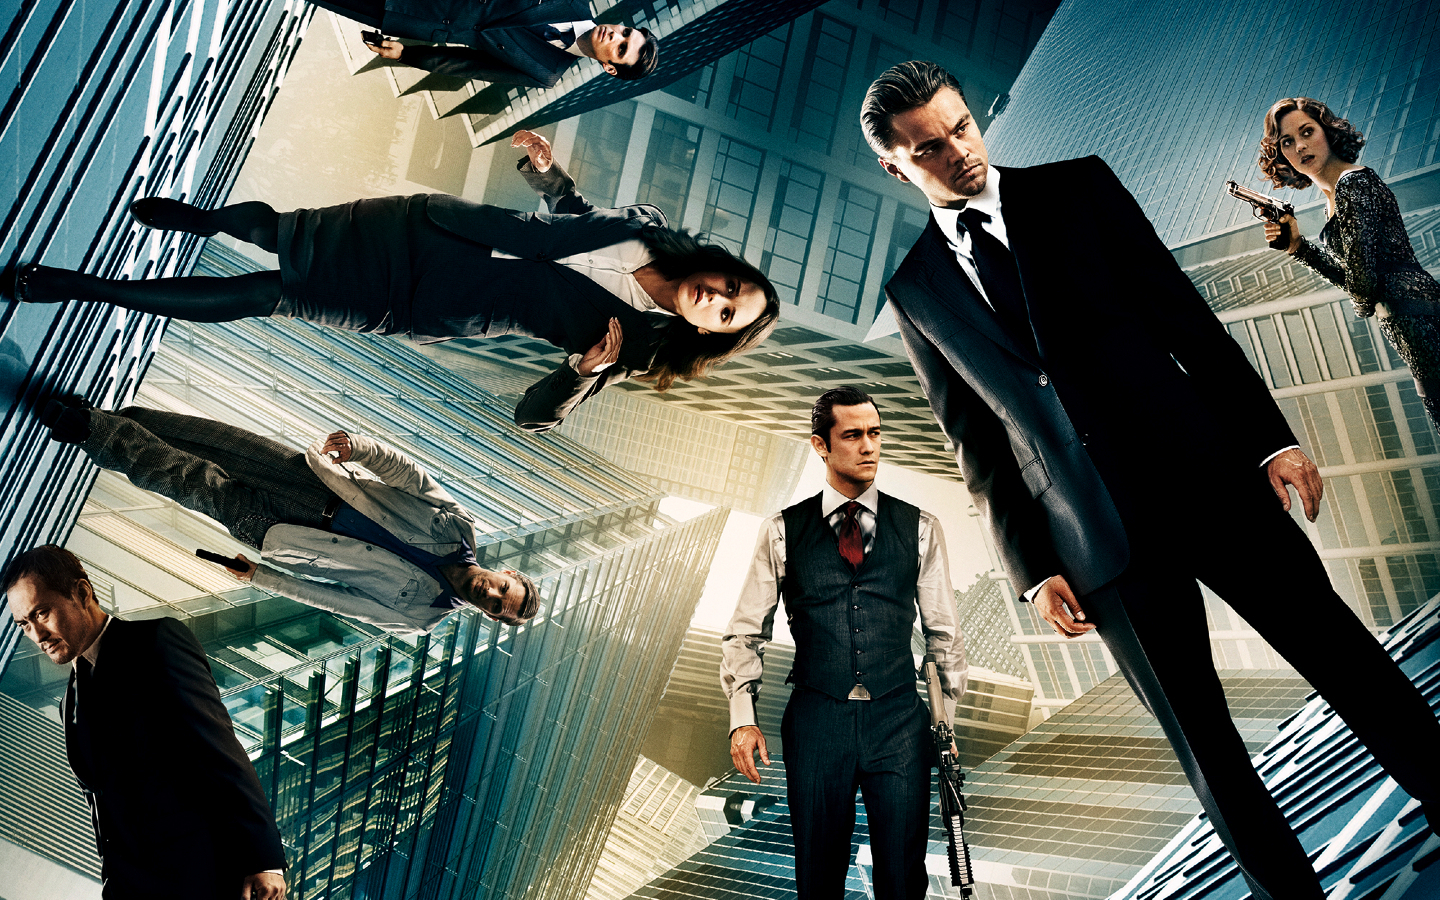 Inception wallpapers - Inception (2010) Wallpaper ...